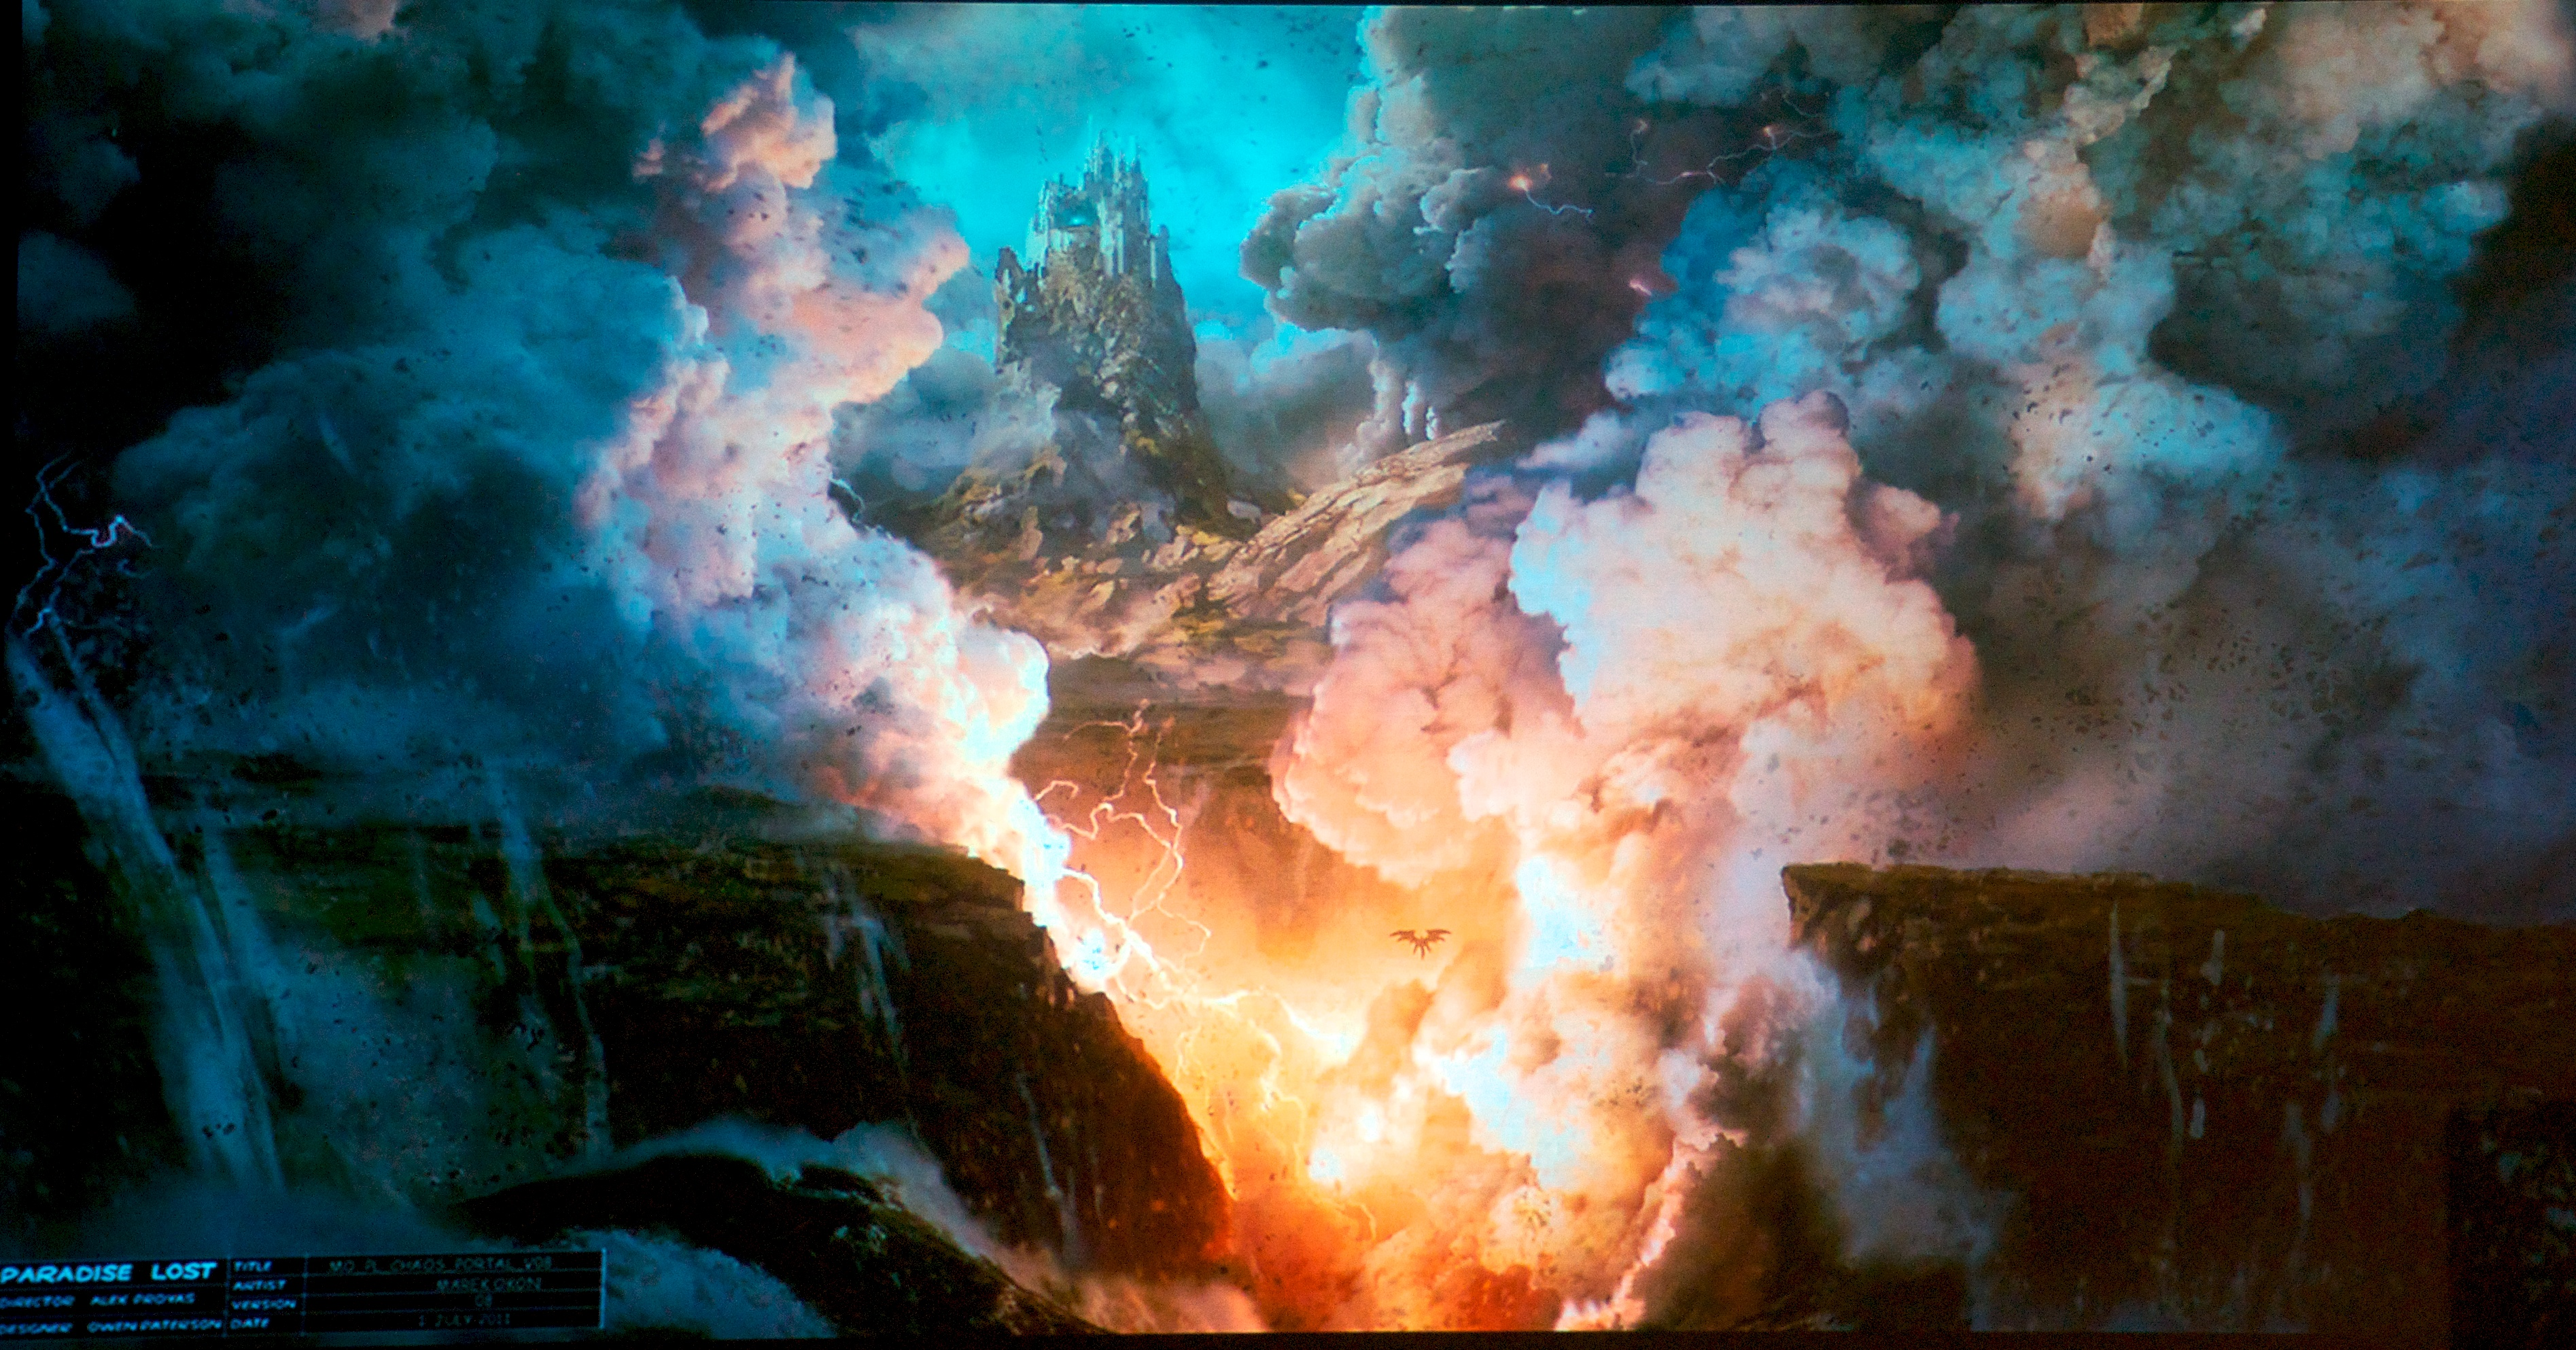 the paradise lost film chaos portal concept art for paradise lost by marek okon